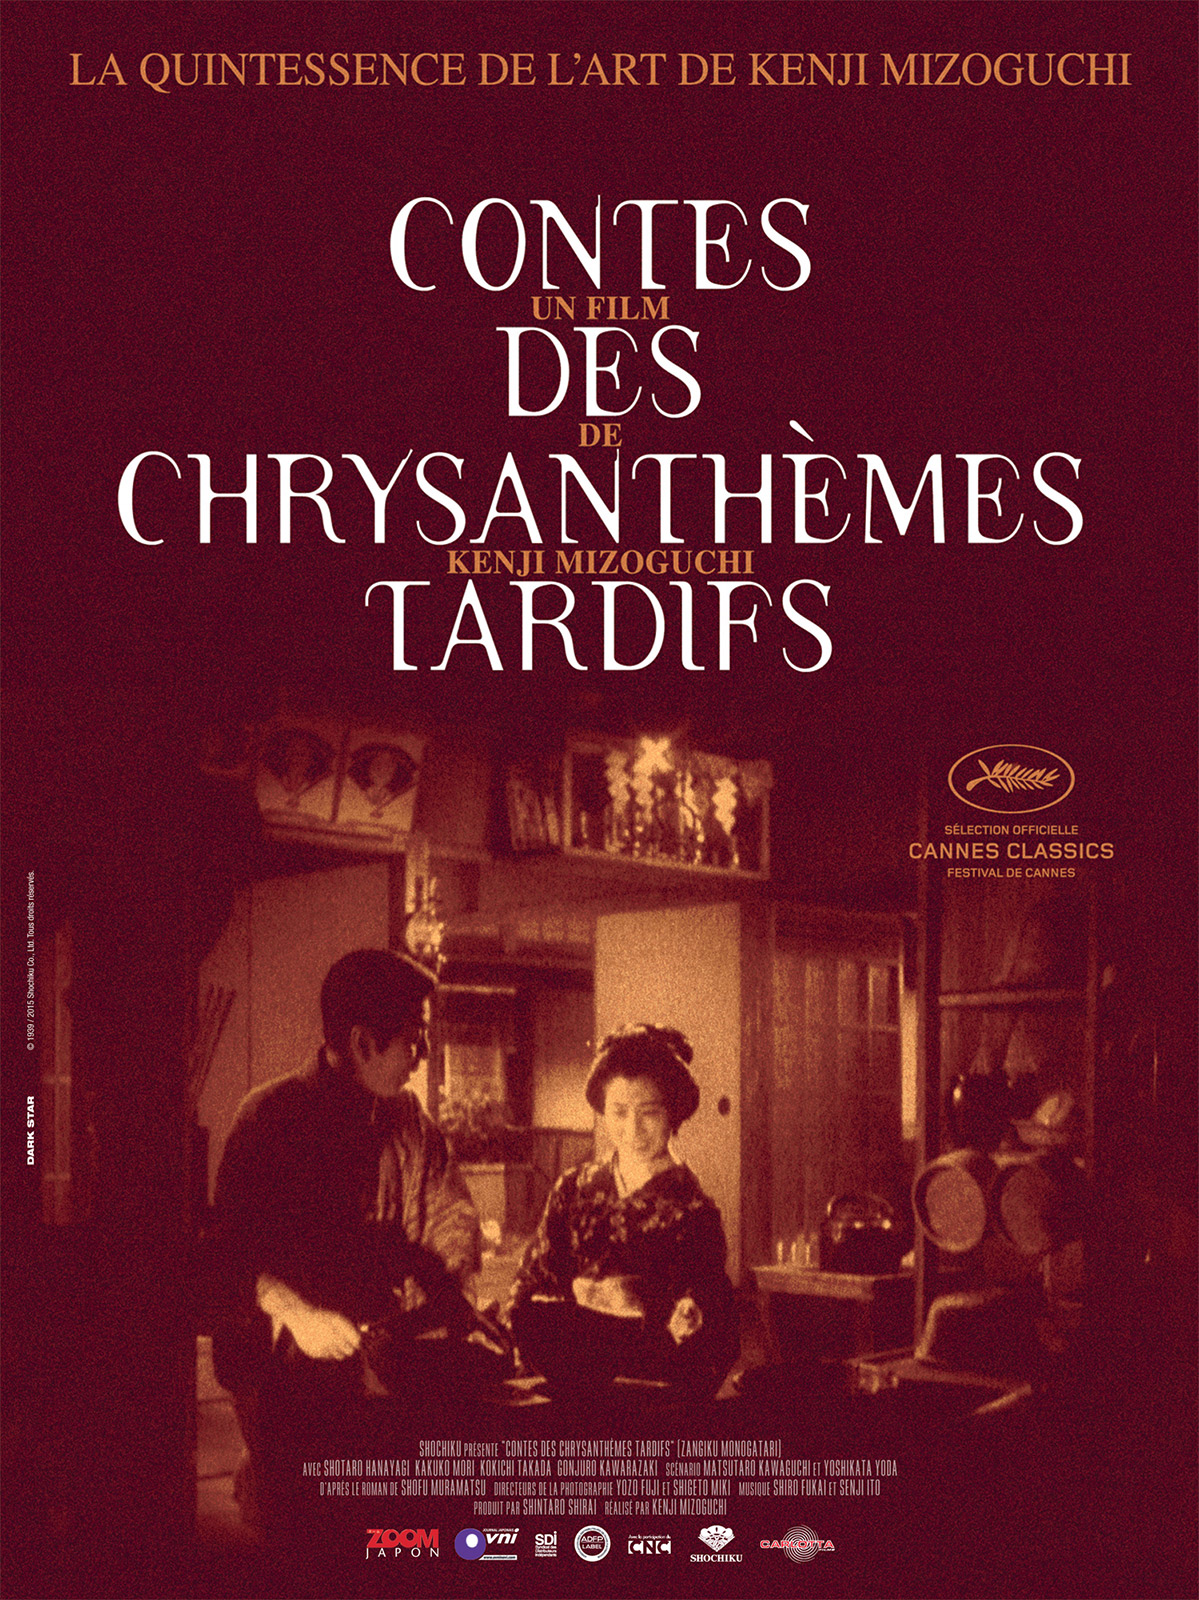 Contes des chrysanthèmes tardifs Streaming Web-DL HDLight